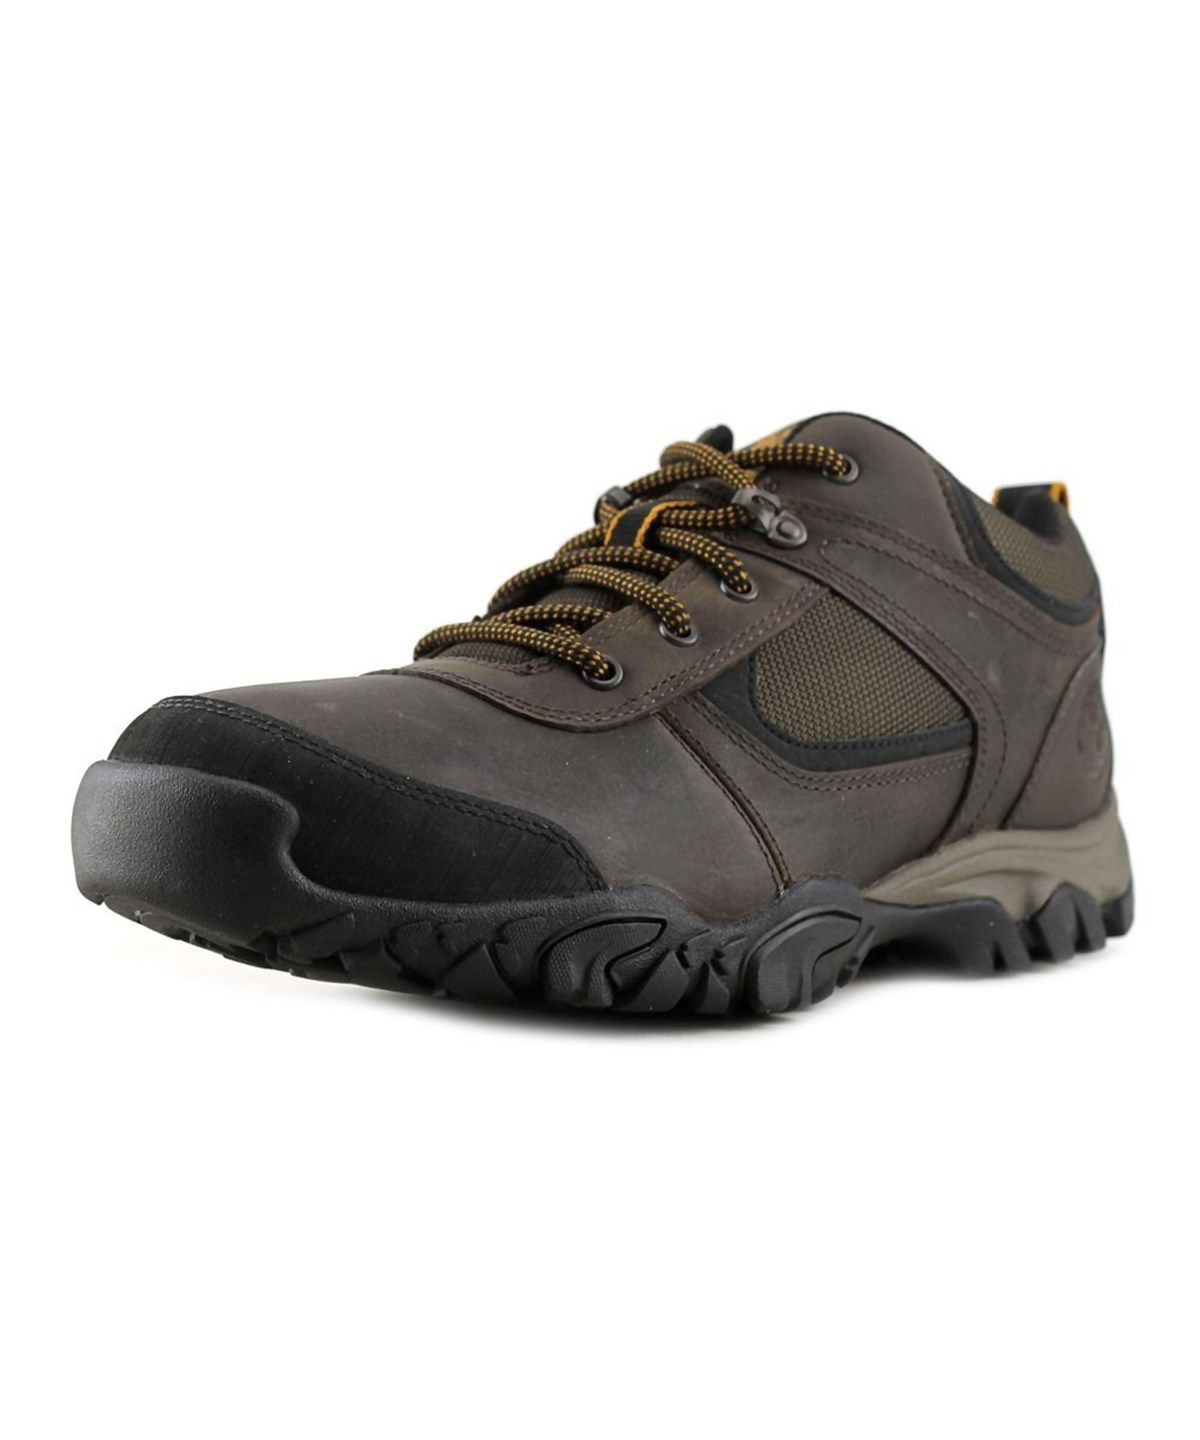 TIMBERLAND TIMBERLAND MT. ABRAM LOW   ROUND TOE LEATHER  HIKING BOOT'. #timberland #shoes #boots